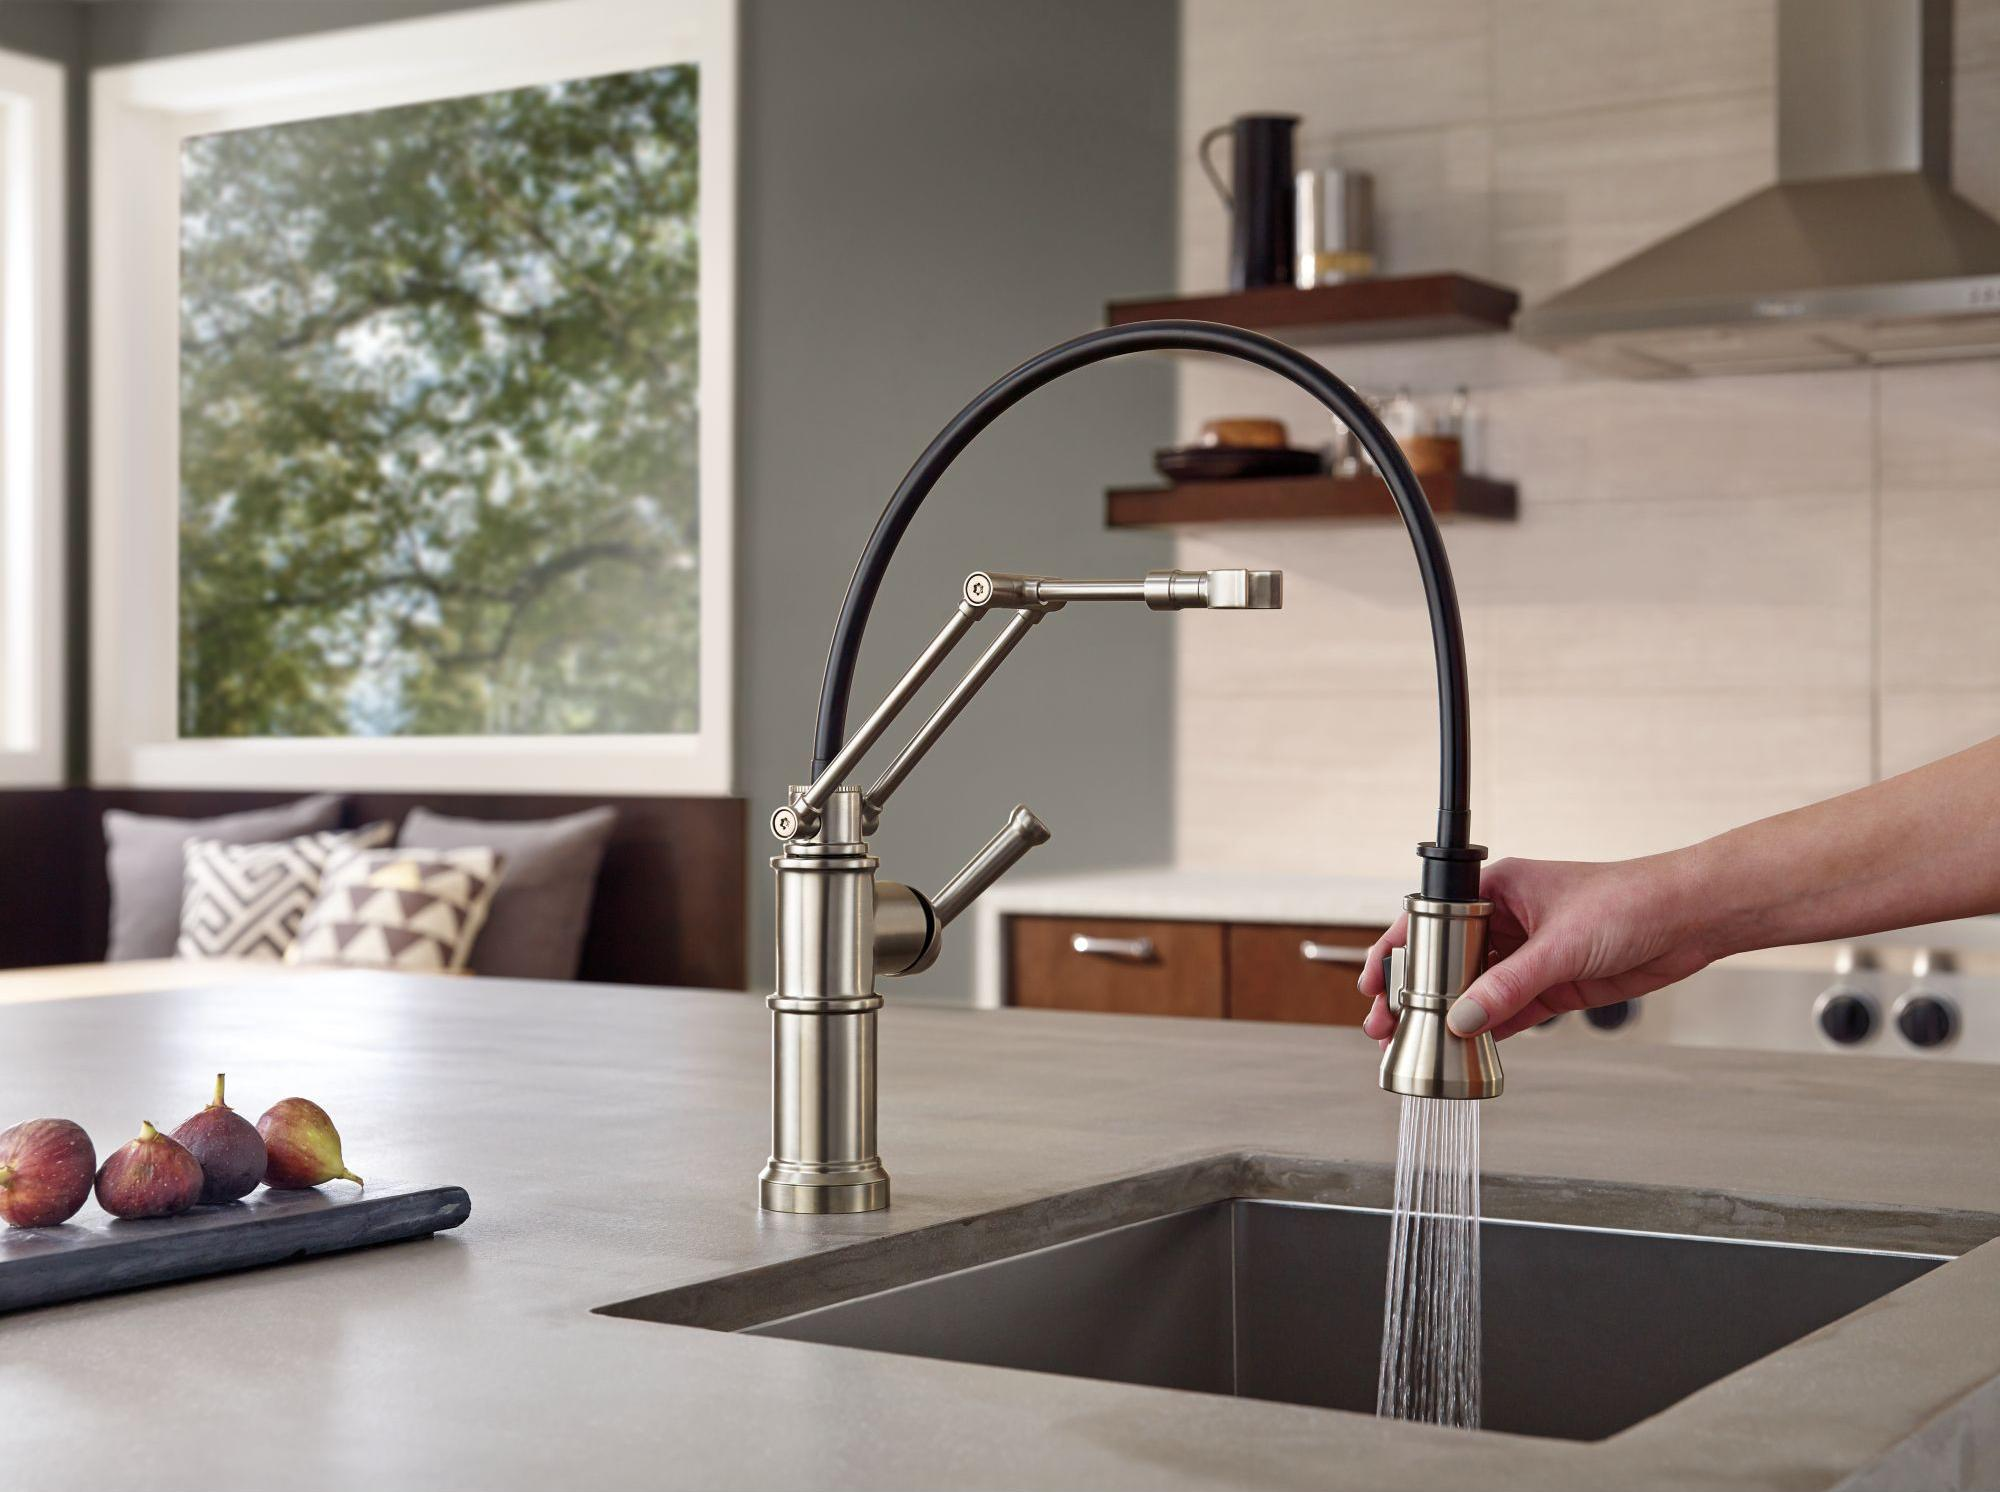 Articulating Kitchen Faucet Innovation A Sum Of Parts Artesso Articulating Faucet By Brizo